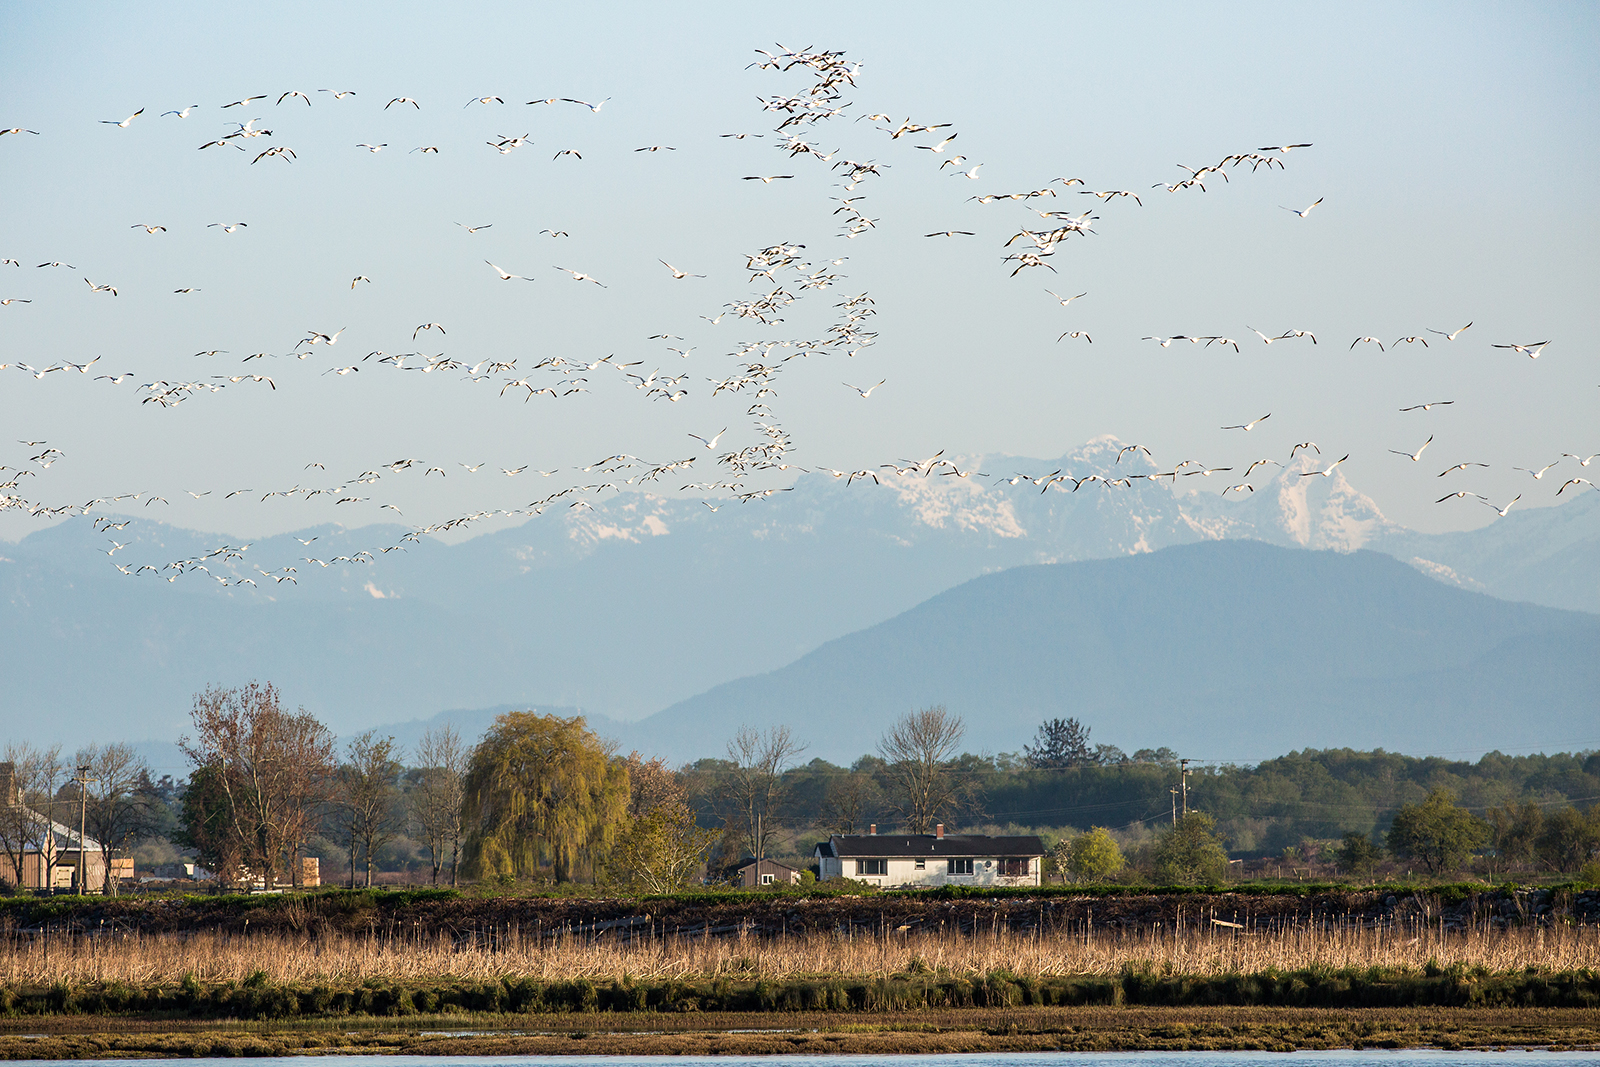 Snow Geese migrate North across the Fraser River of Brunswick Point on April 26, 2018 in Tsawwassen, B.C.